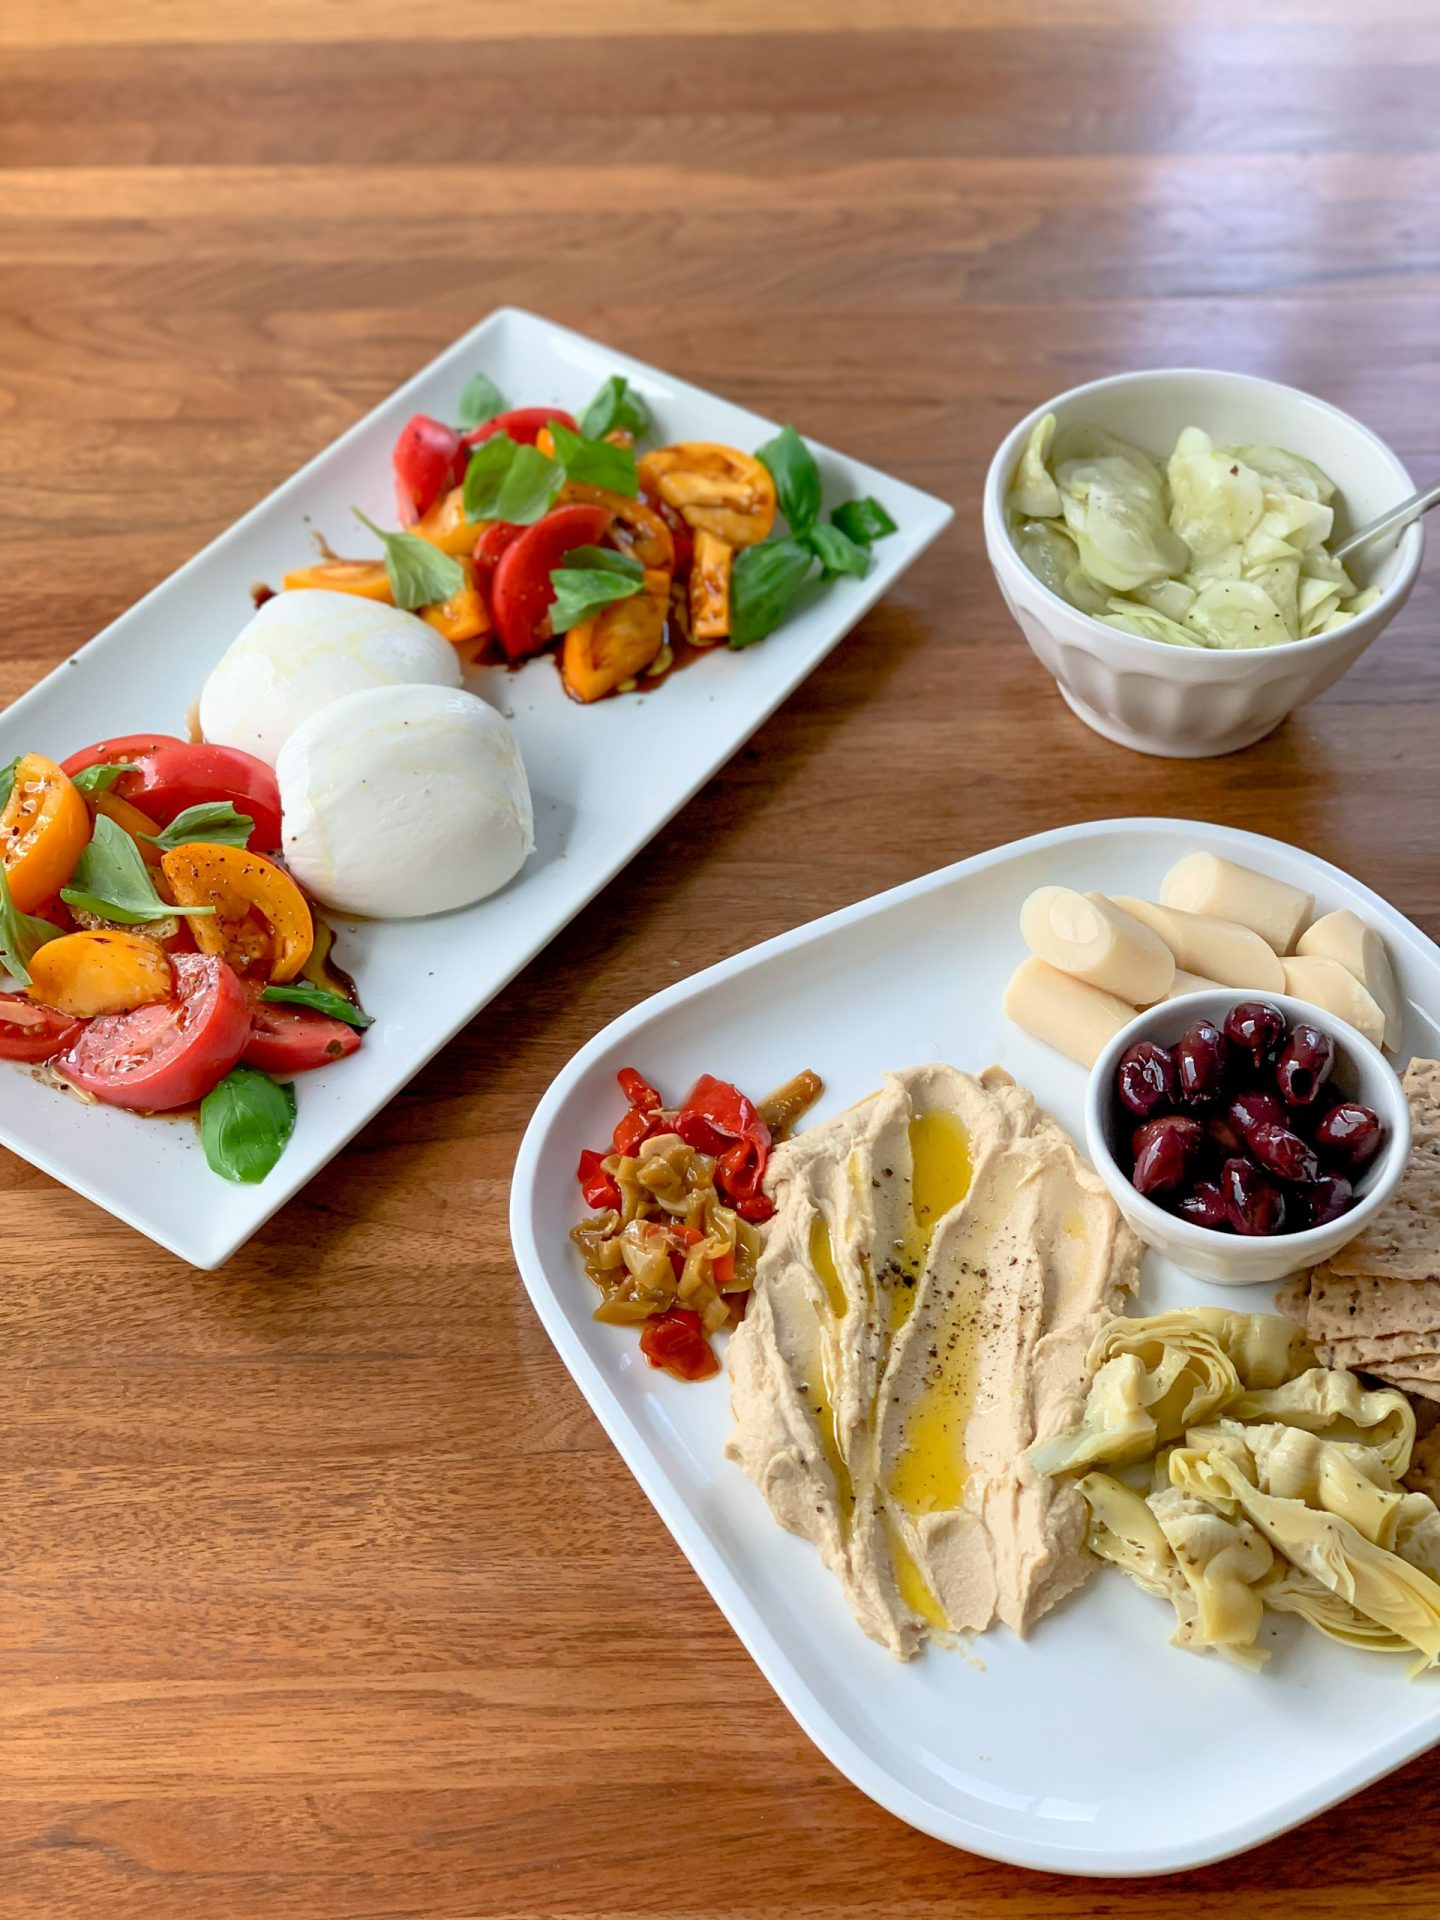 simple summer meal ideas - summer salads - mezze platter - Lauren Schwaiger healthy living blog